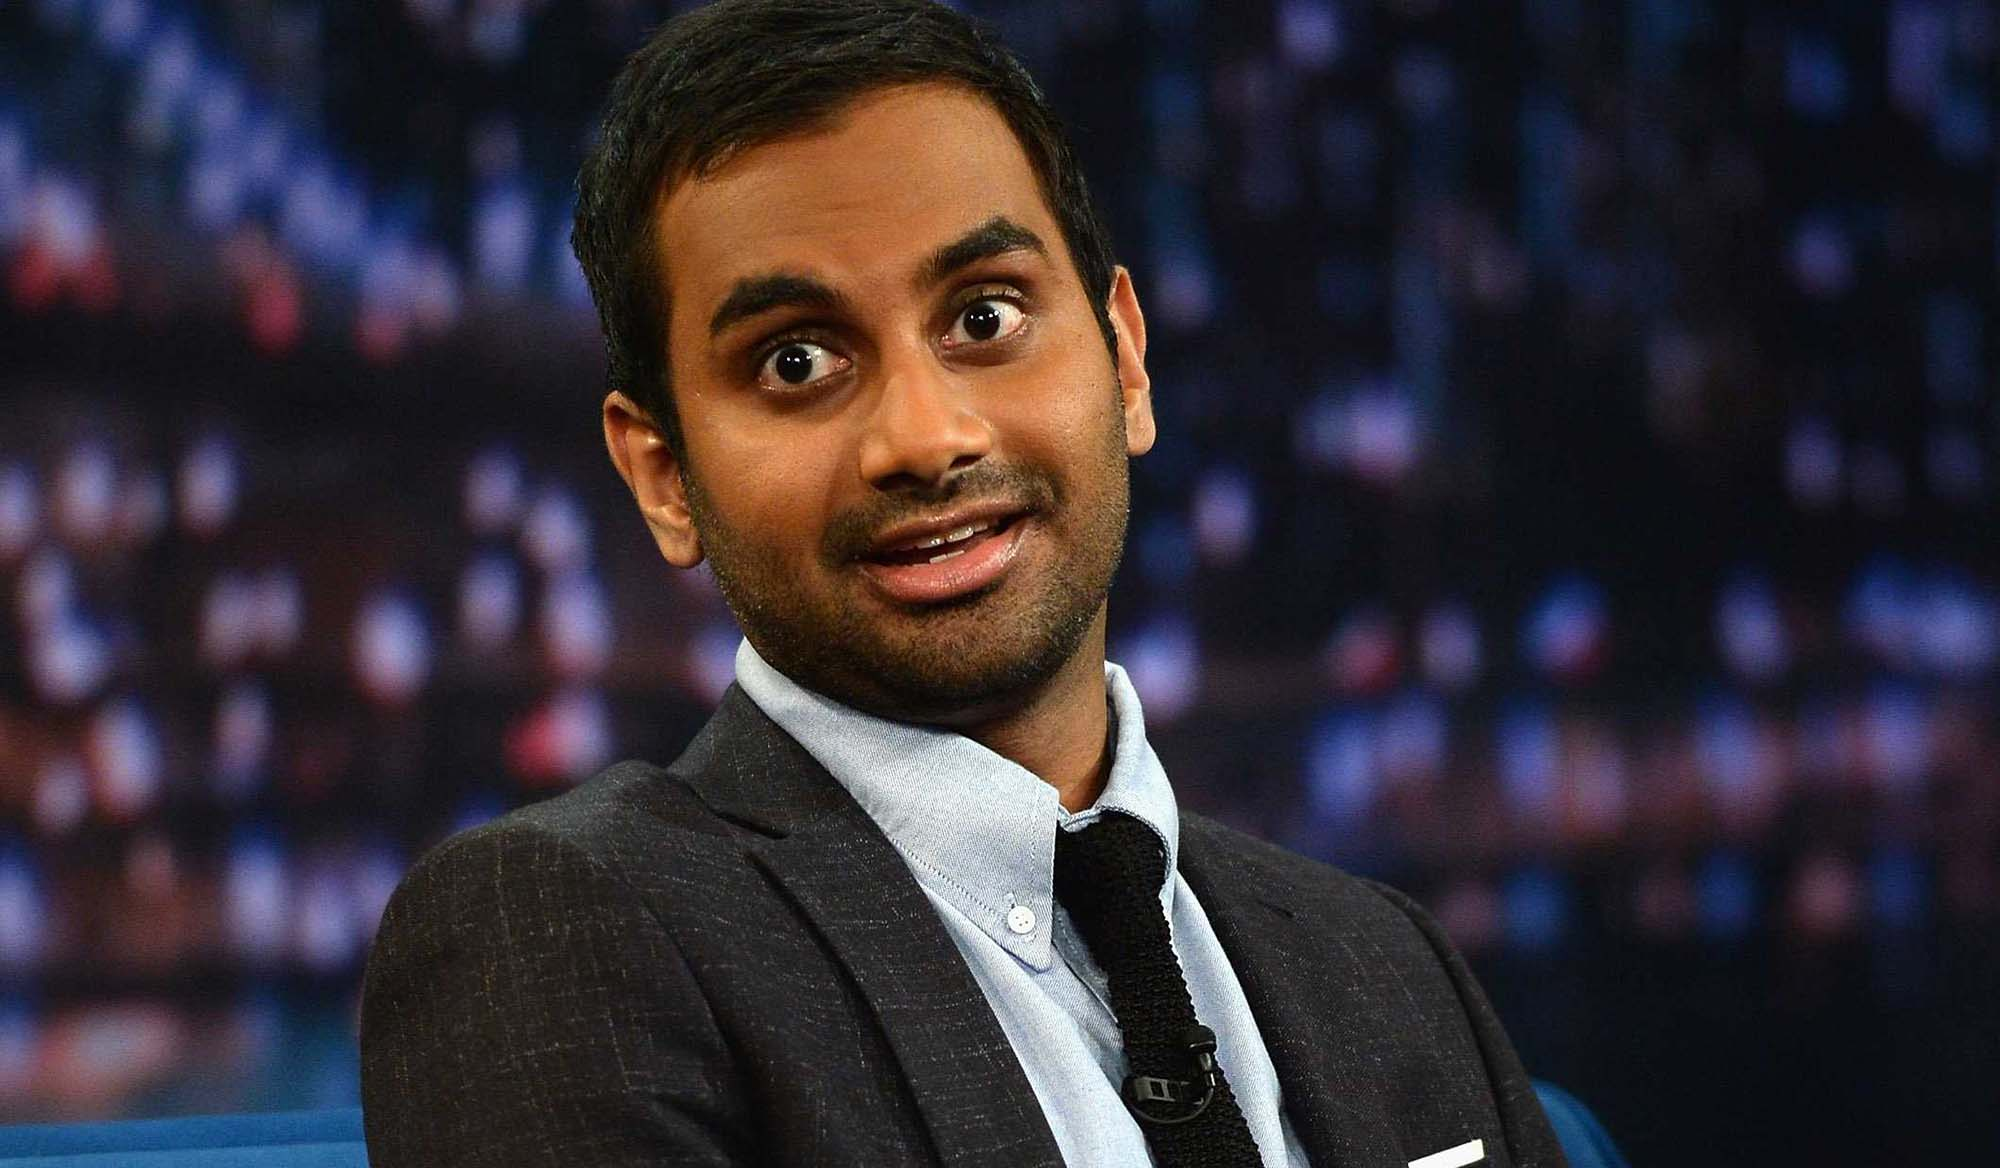 "Aziz Ansari has responded to sexual misconduct allegations made against him by an anonymous source. The 'Master of None' star and co-creator released a statement outlining his own take on the allegations, claiming that he was ""surprised and concerned""."